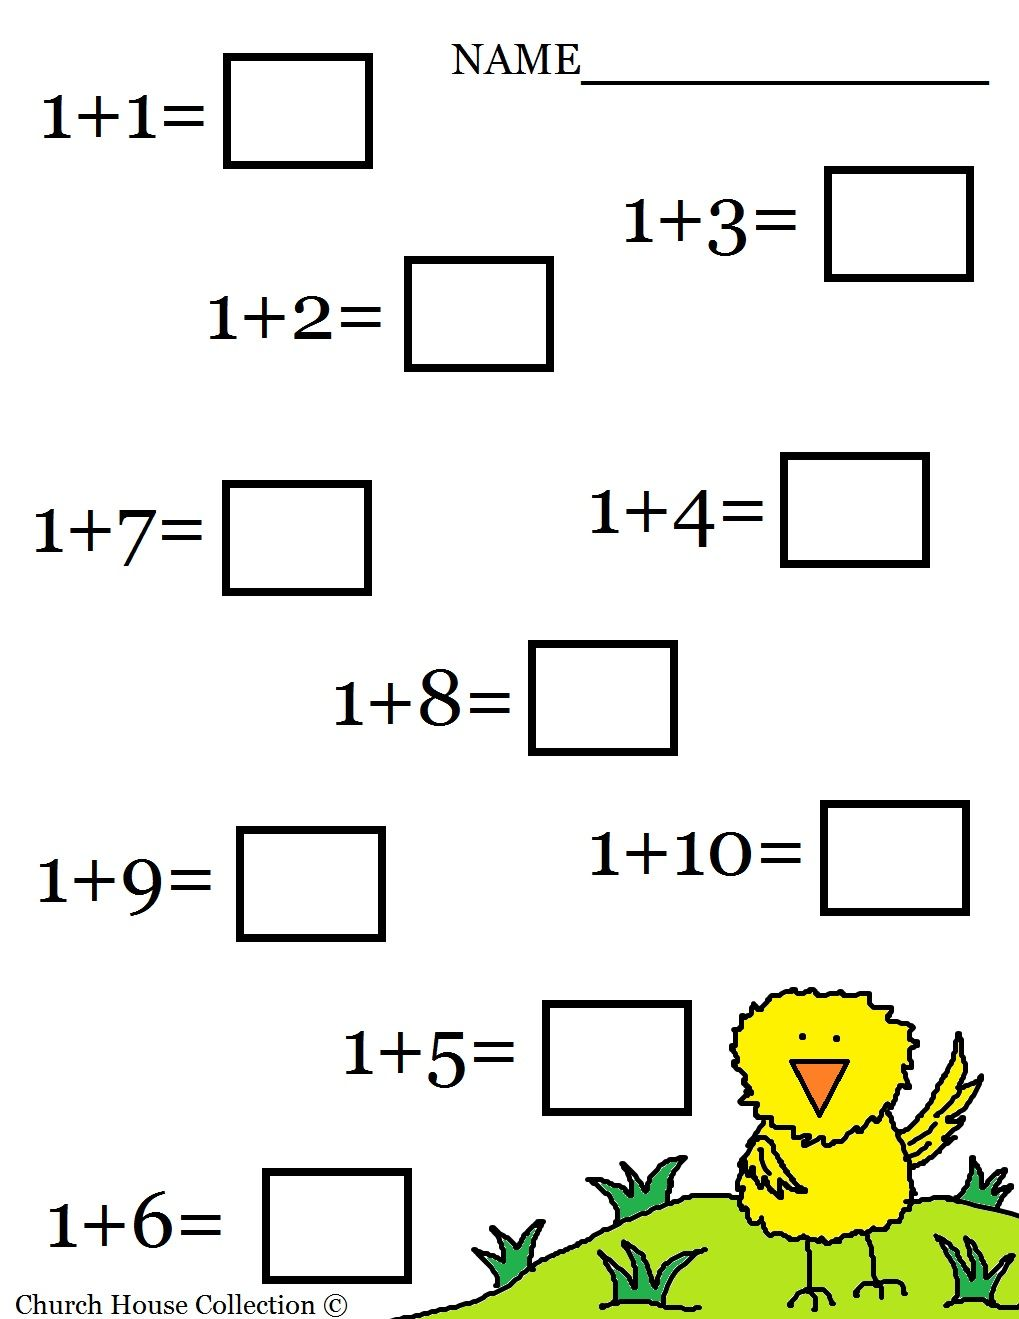 Aldiablosus  Splendid  Images About Worksheets  Math On Pinterest  Math Sheets  With Licious  Images About Worksheets  Math On Pinterest  Math Sheets Math Worksheets For Kindergarten And Simple Addition With Delightful Volume Of Cube And Cuboid Worksheet Also Mixed Addition Subtraction Multiplication And Division Worksheets In Addition Verb Noun Adjective Worksheets And Teachers Maths Worksheets As Well As Nd Grade Reading Comprehension Worksheets Free Printable Additionally Common Core Math Worksheets For Third Grade From Pinterestcom With Aldiablosus  Licious  Images About Worksheets  Math On Pinterest  Math Sheets  With Delightful  Images About Worksheets  Math On Pinterest  Math Sheets Math Worksheets For Kindergarten And Simple Addition And Splendid Volume Of Cube And Cuboid Worksheet Also Mixed Addition Subtraction Multiplication And Division Worksheets In Addition Verb Noun Adjective Worksheets From Pinterestcom